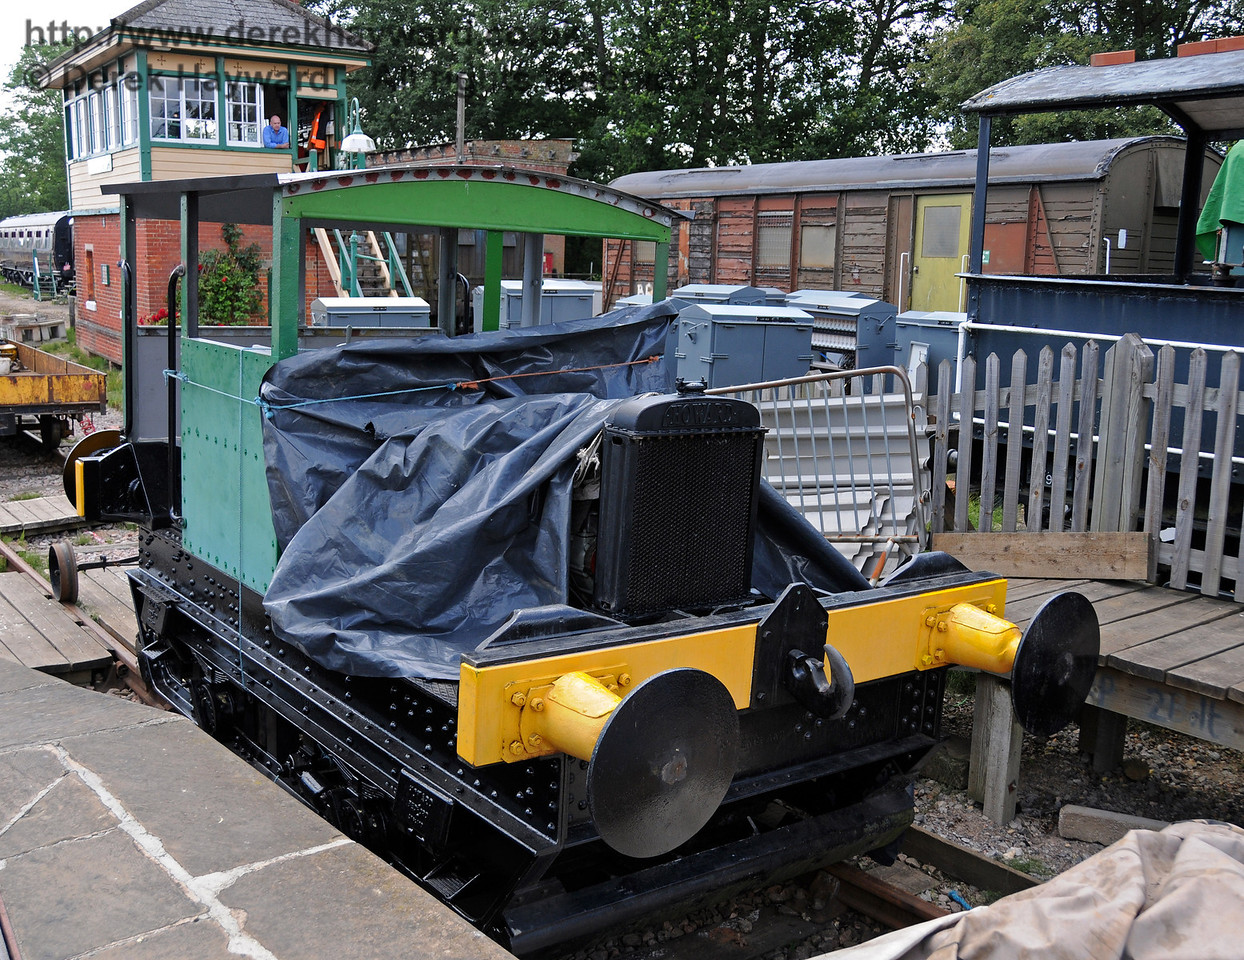 Howard Petrol Locomotive 957 Britannia being made ready for service at Horsted Keynes 24.07.2010  3280